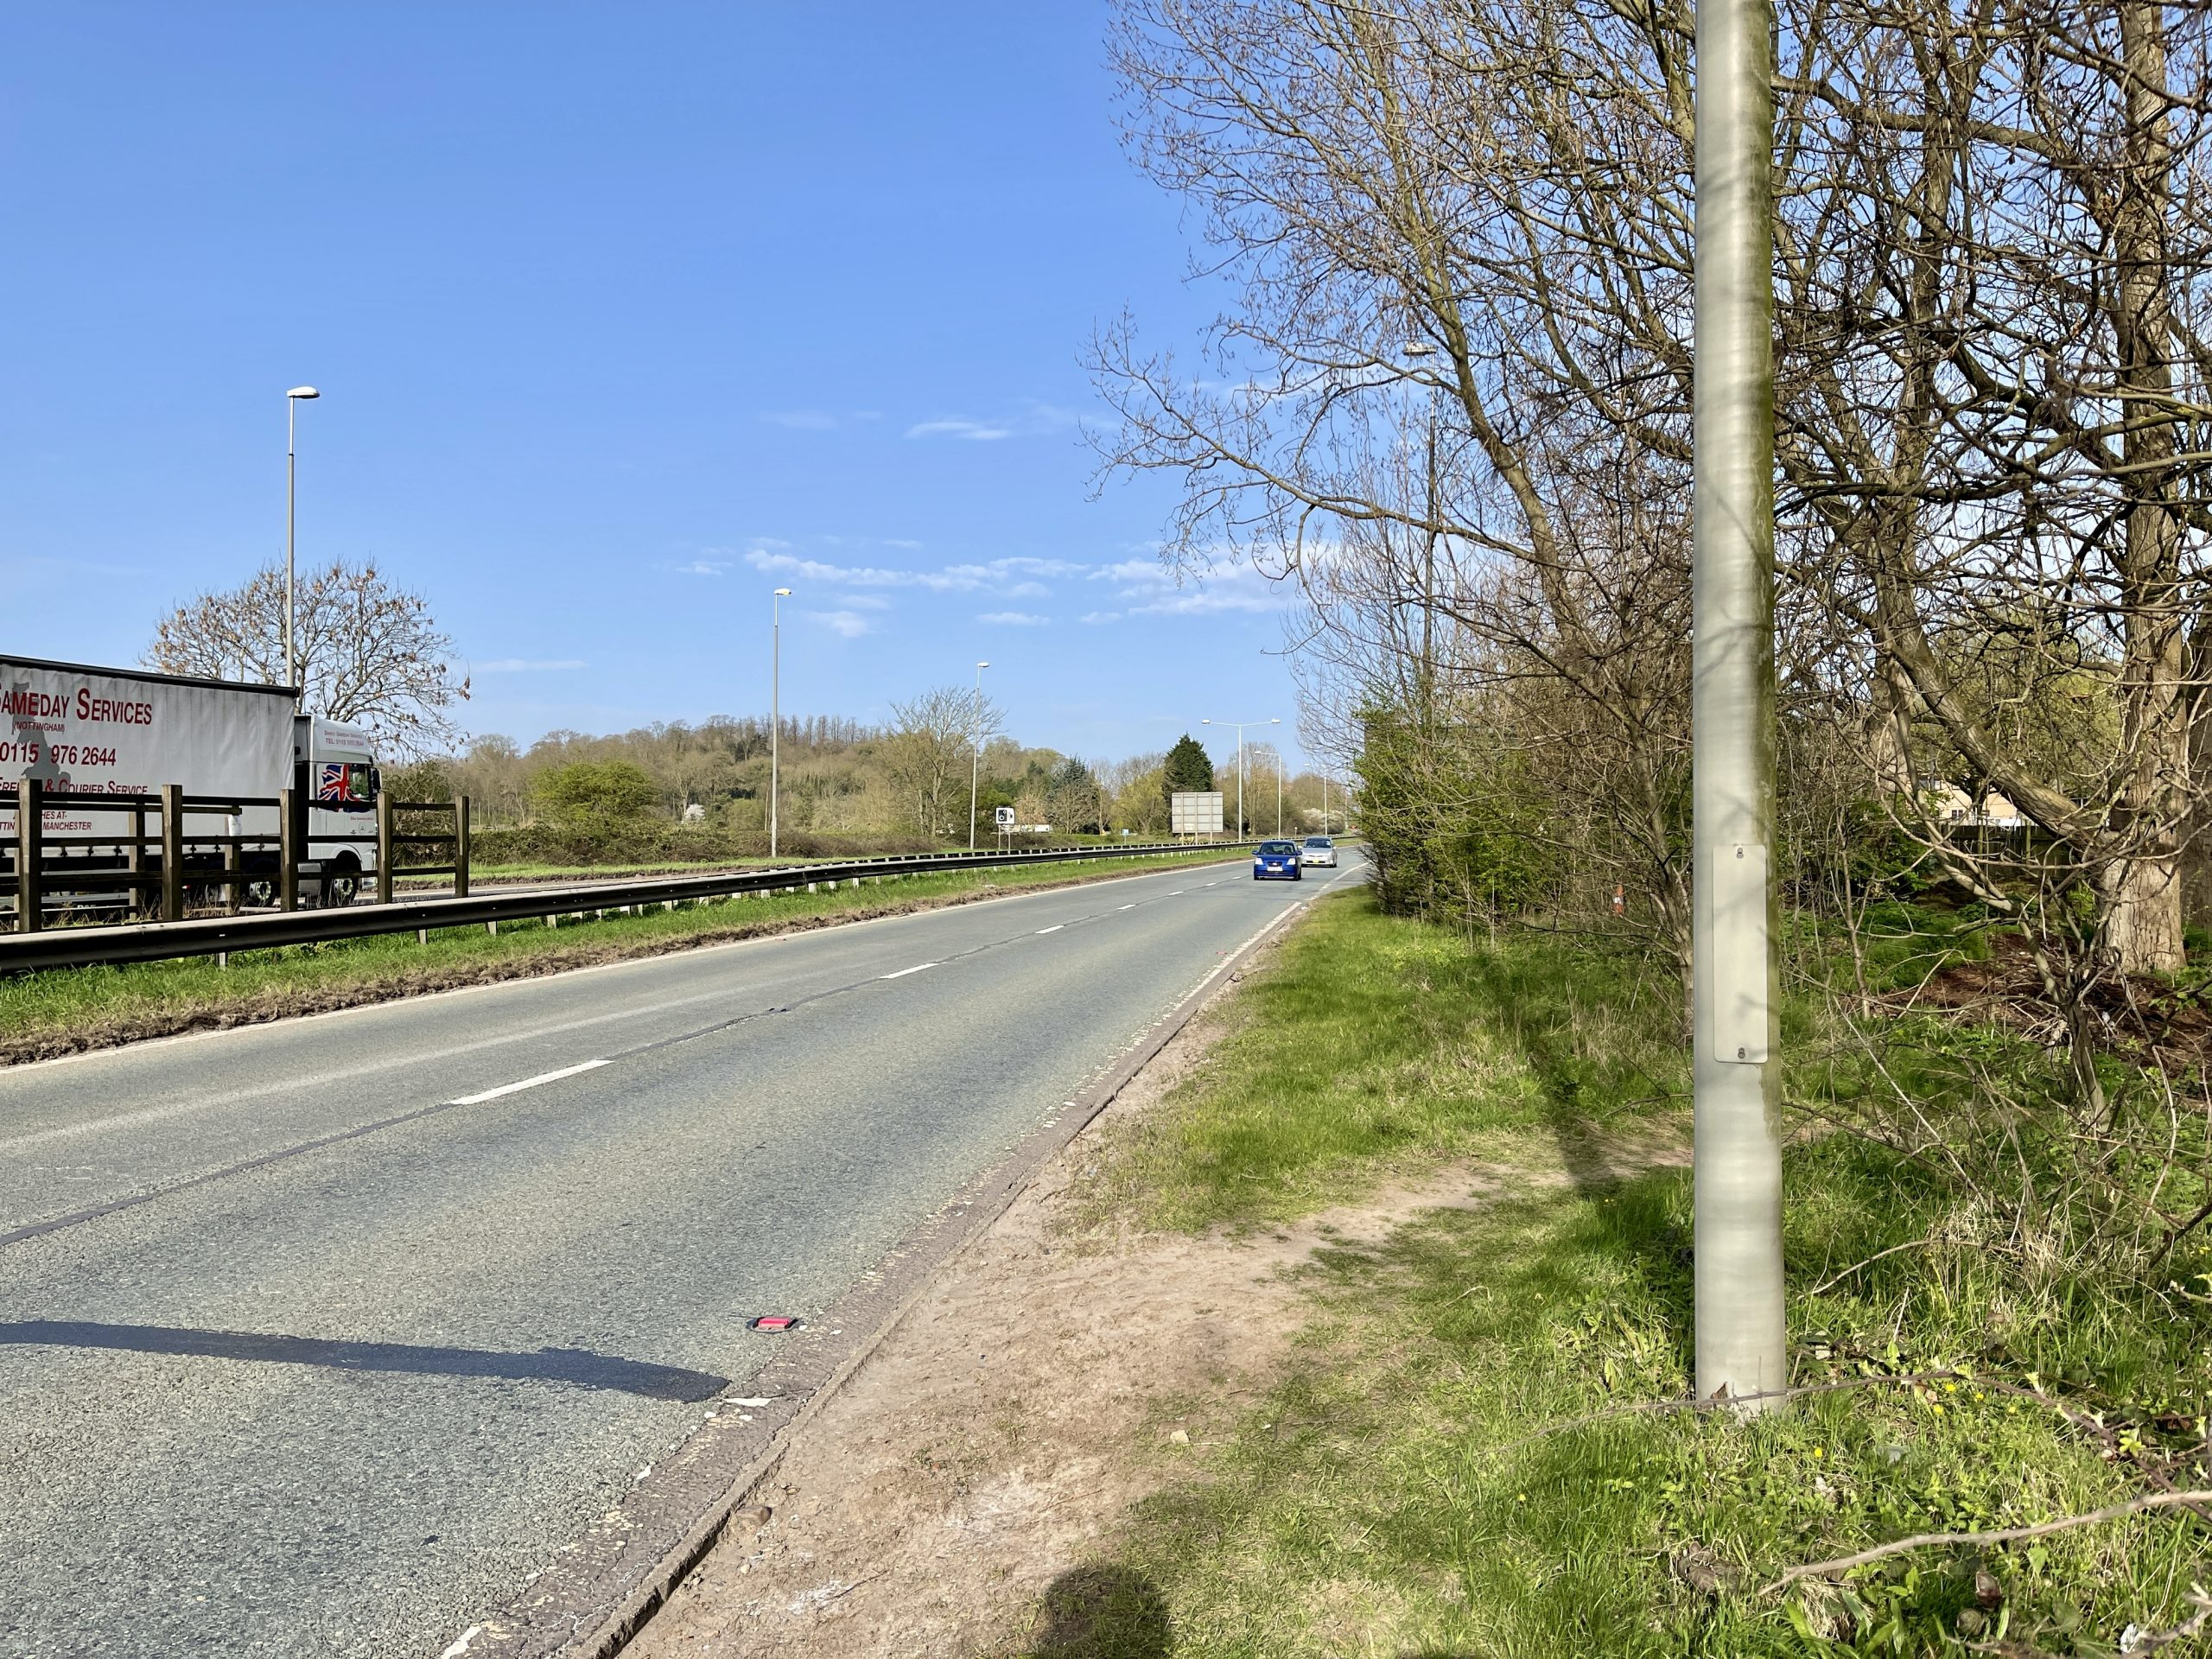 Trees and shrubs cause blind spots for those crossing the A52 ©westbridgfordwire.com